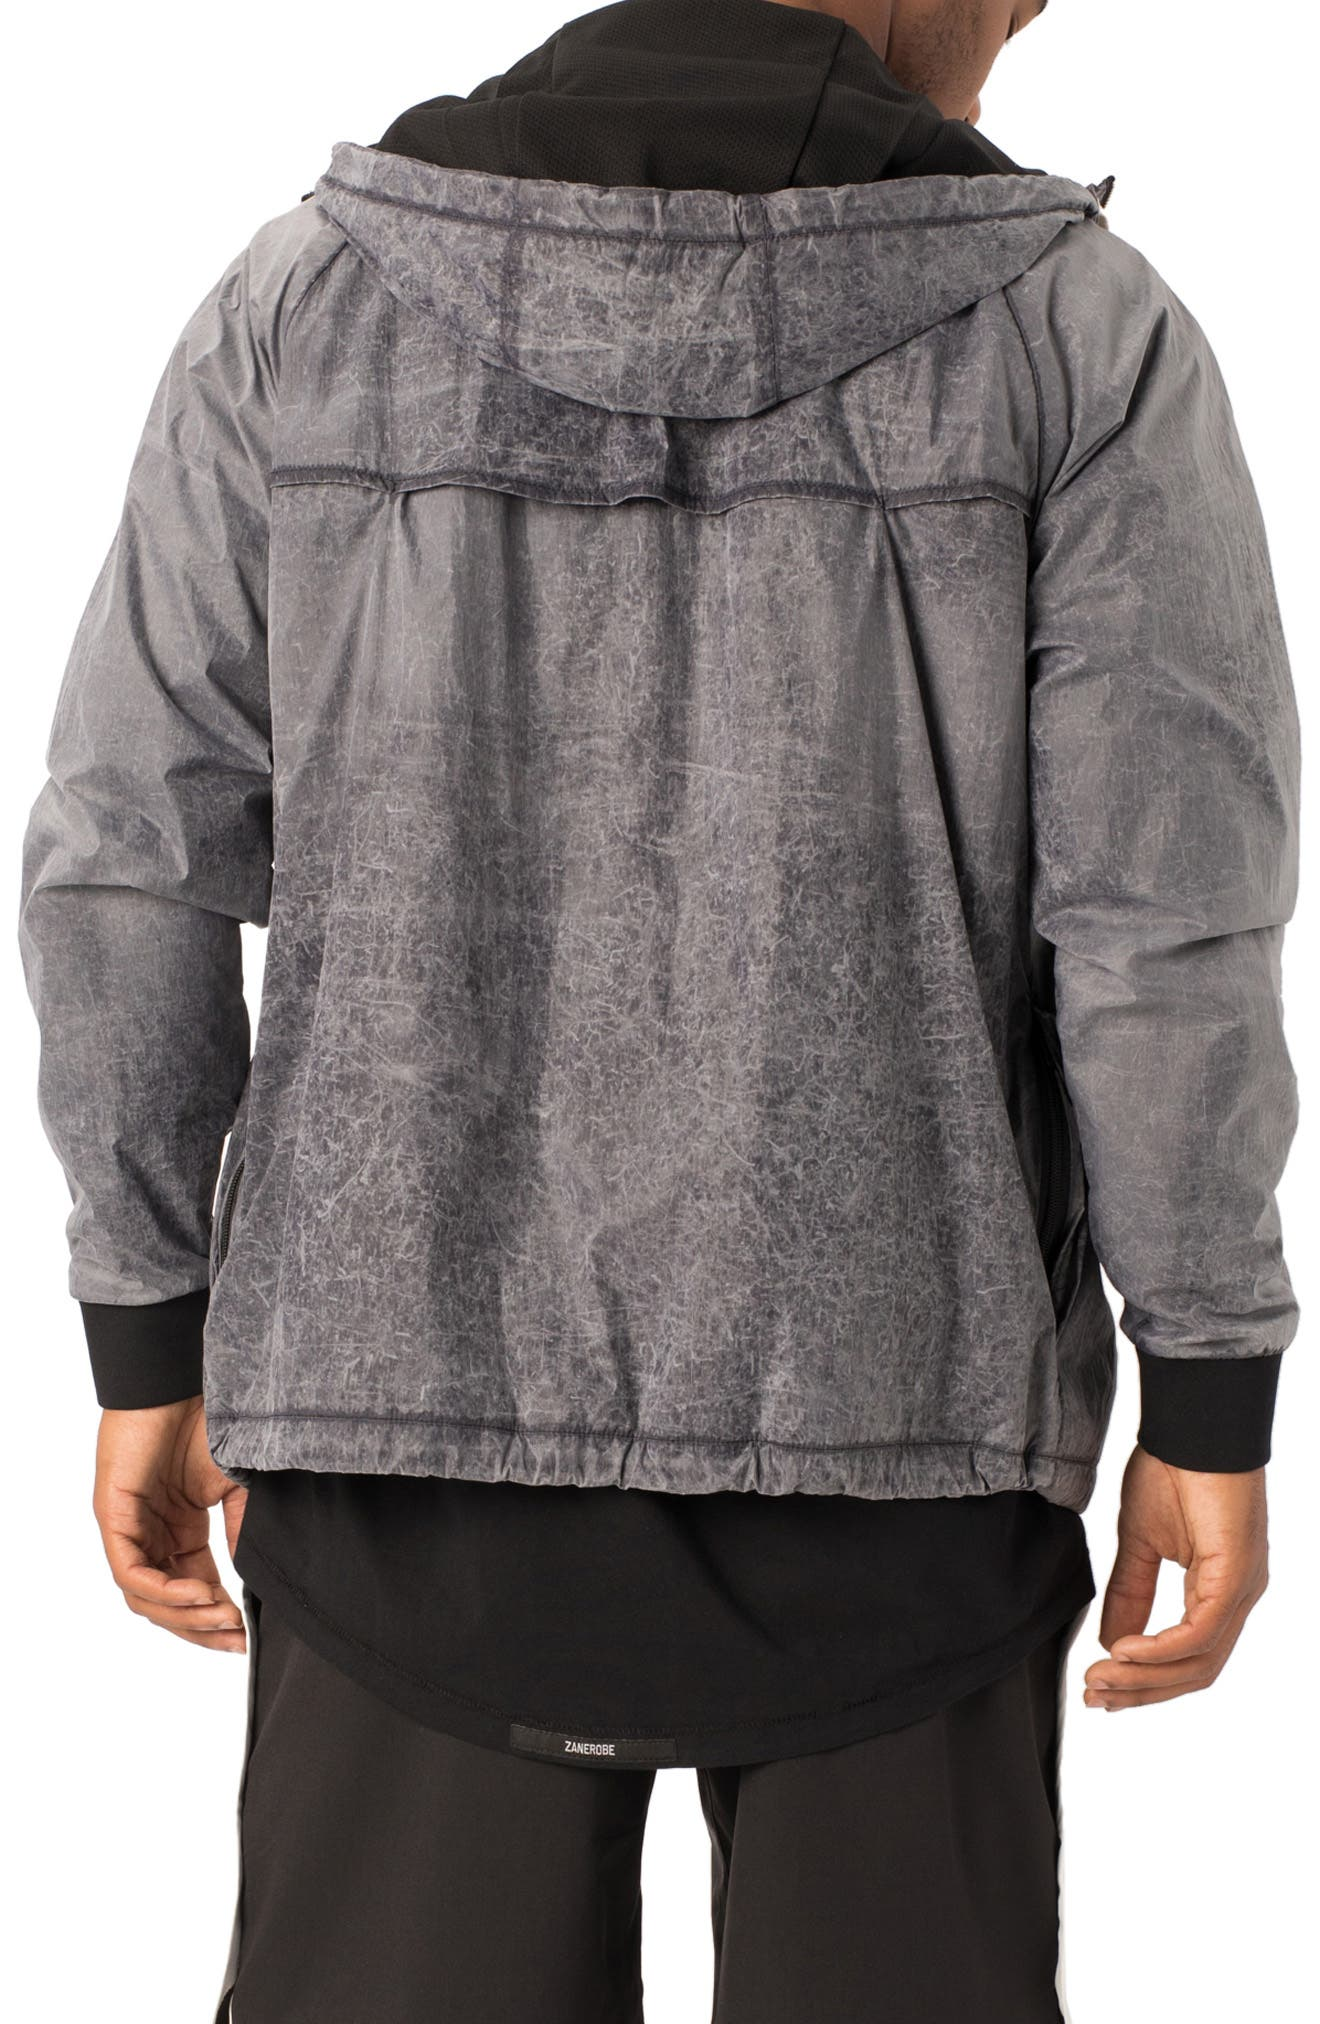 Storm Spray Hooded Jacket,                             Alternate thumbnail 2, color,                             SCRATCHED GREY